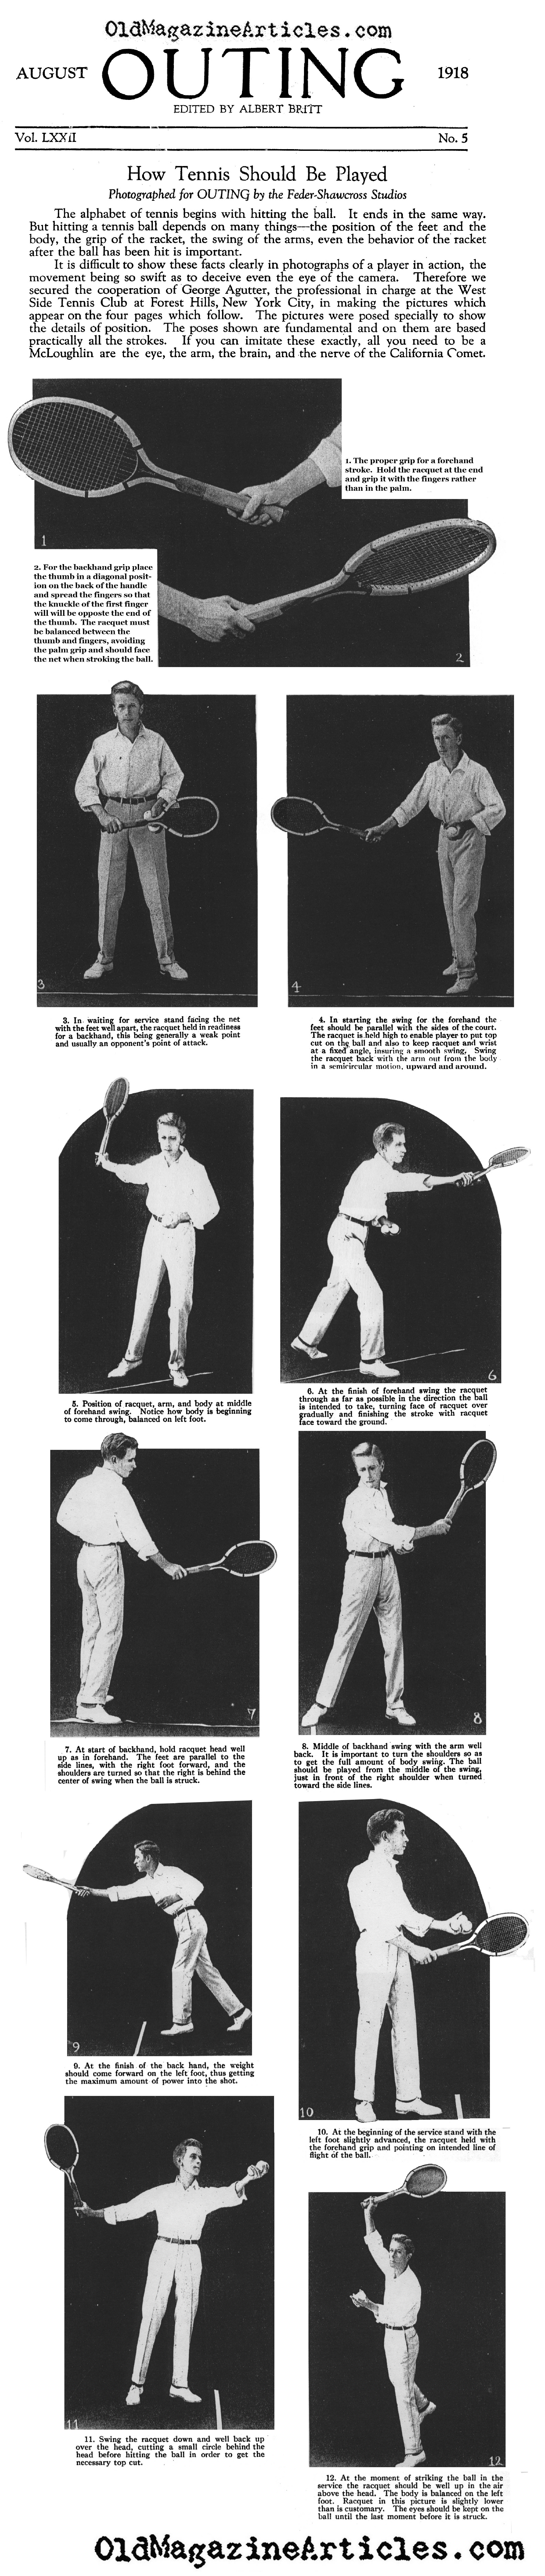 How Tennis Should Be Played (Outing Magazine, 1918)